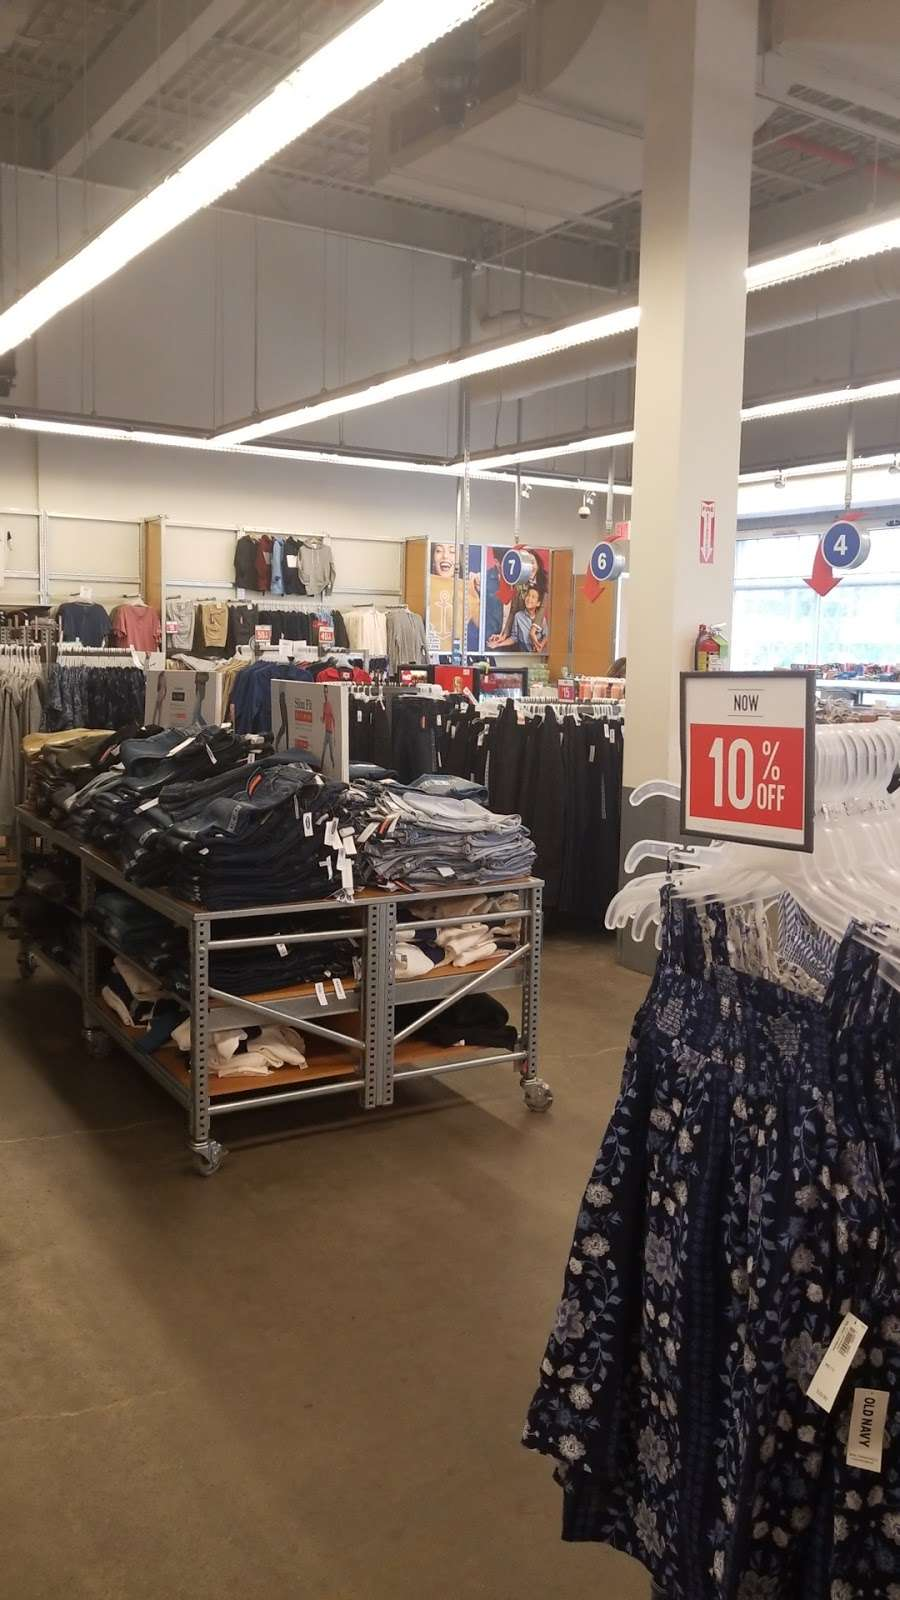 Old Navy - clothing store  | Photo 8 of 10 | Address: 139-15 20th Ave, College Point, NY 11356, USA | Phone: (718) 461-6986